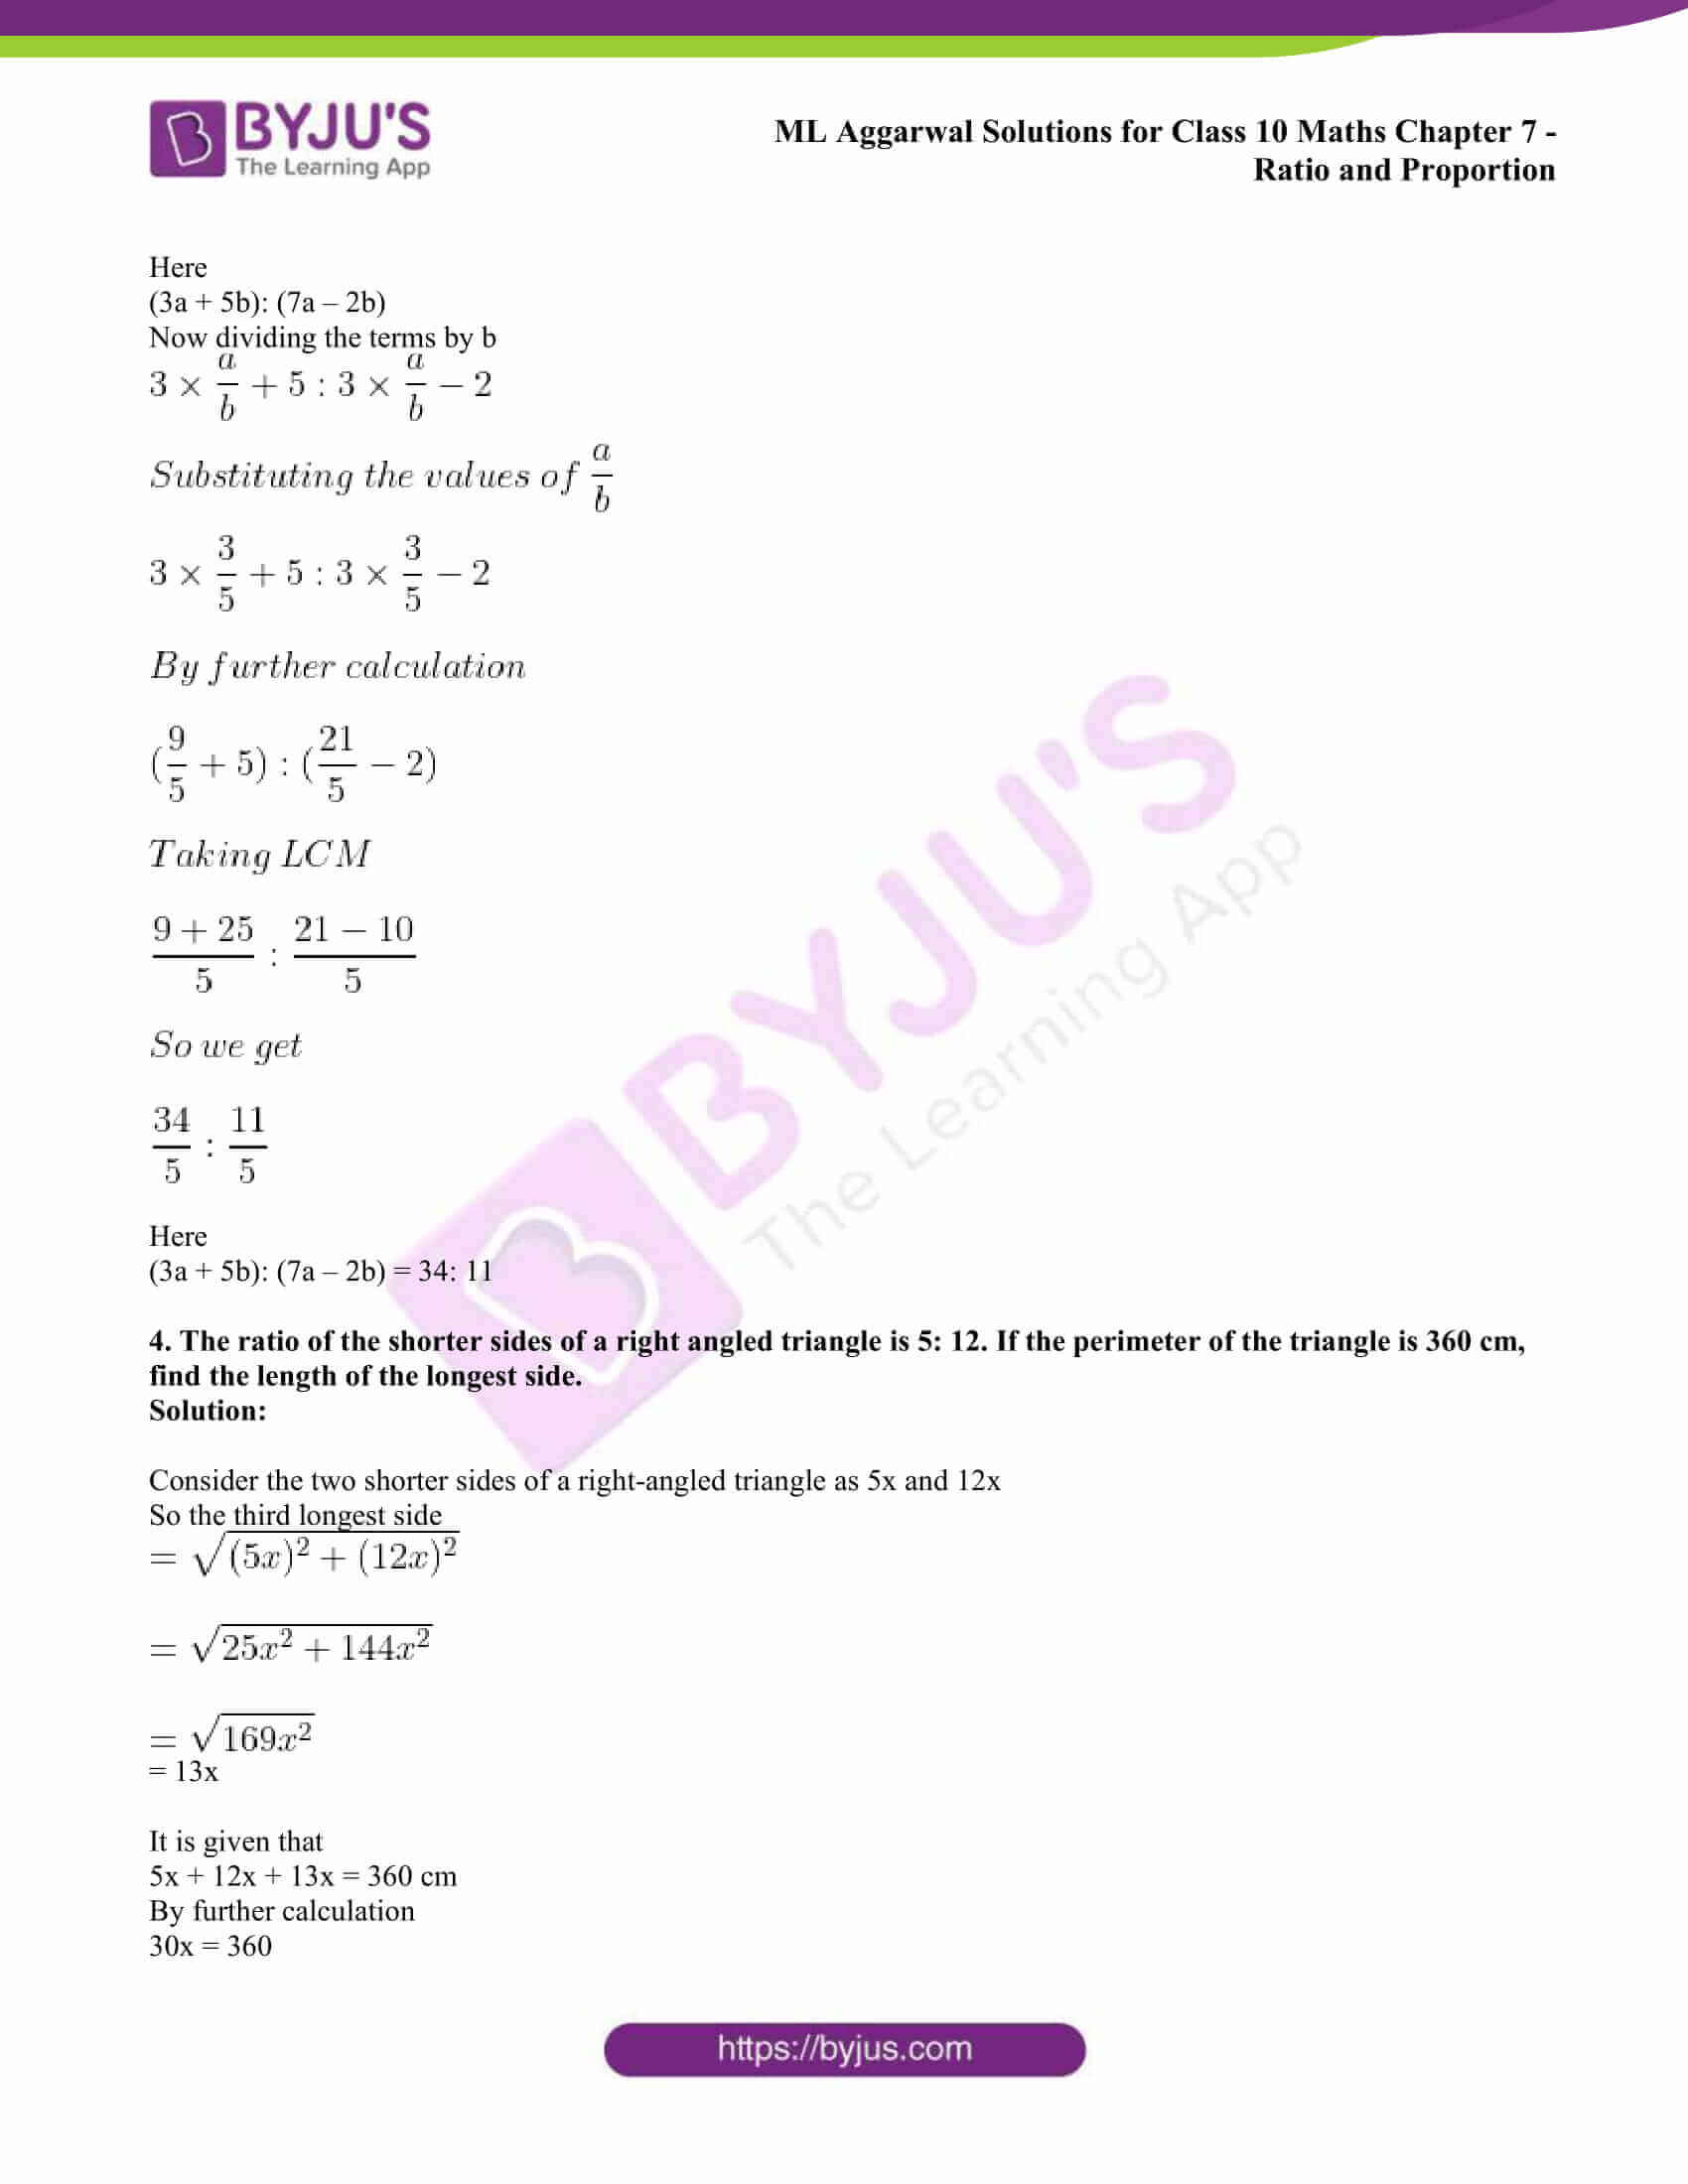 ml aggarwal solutions class 10 maths chapter 7 71